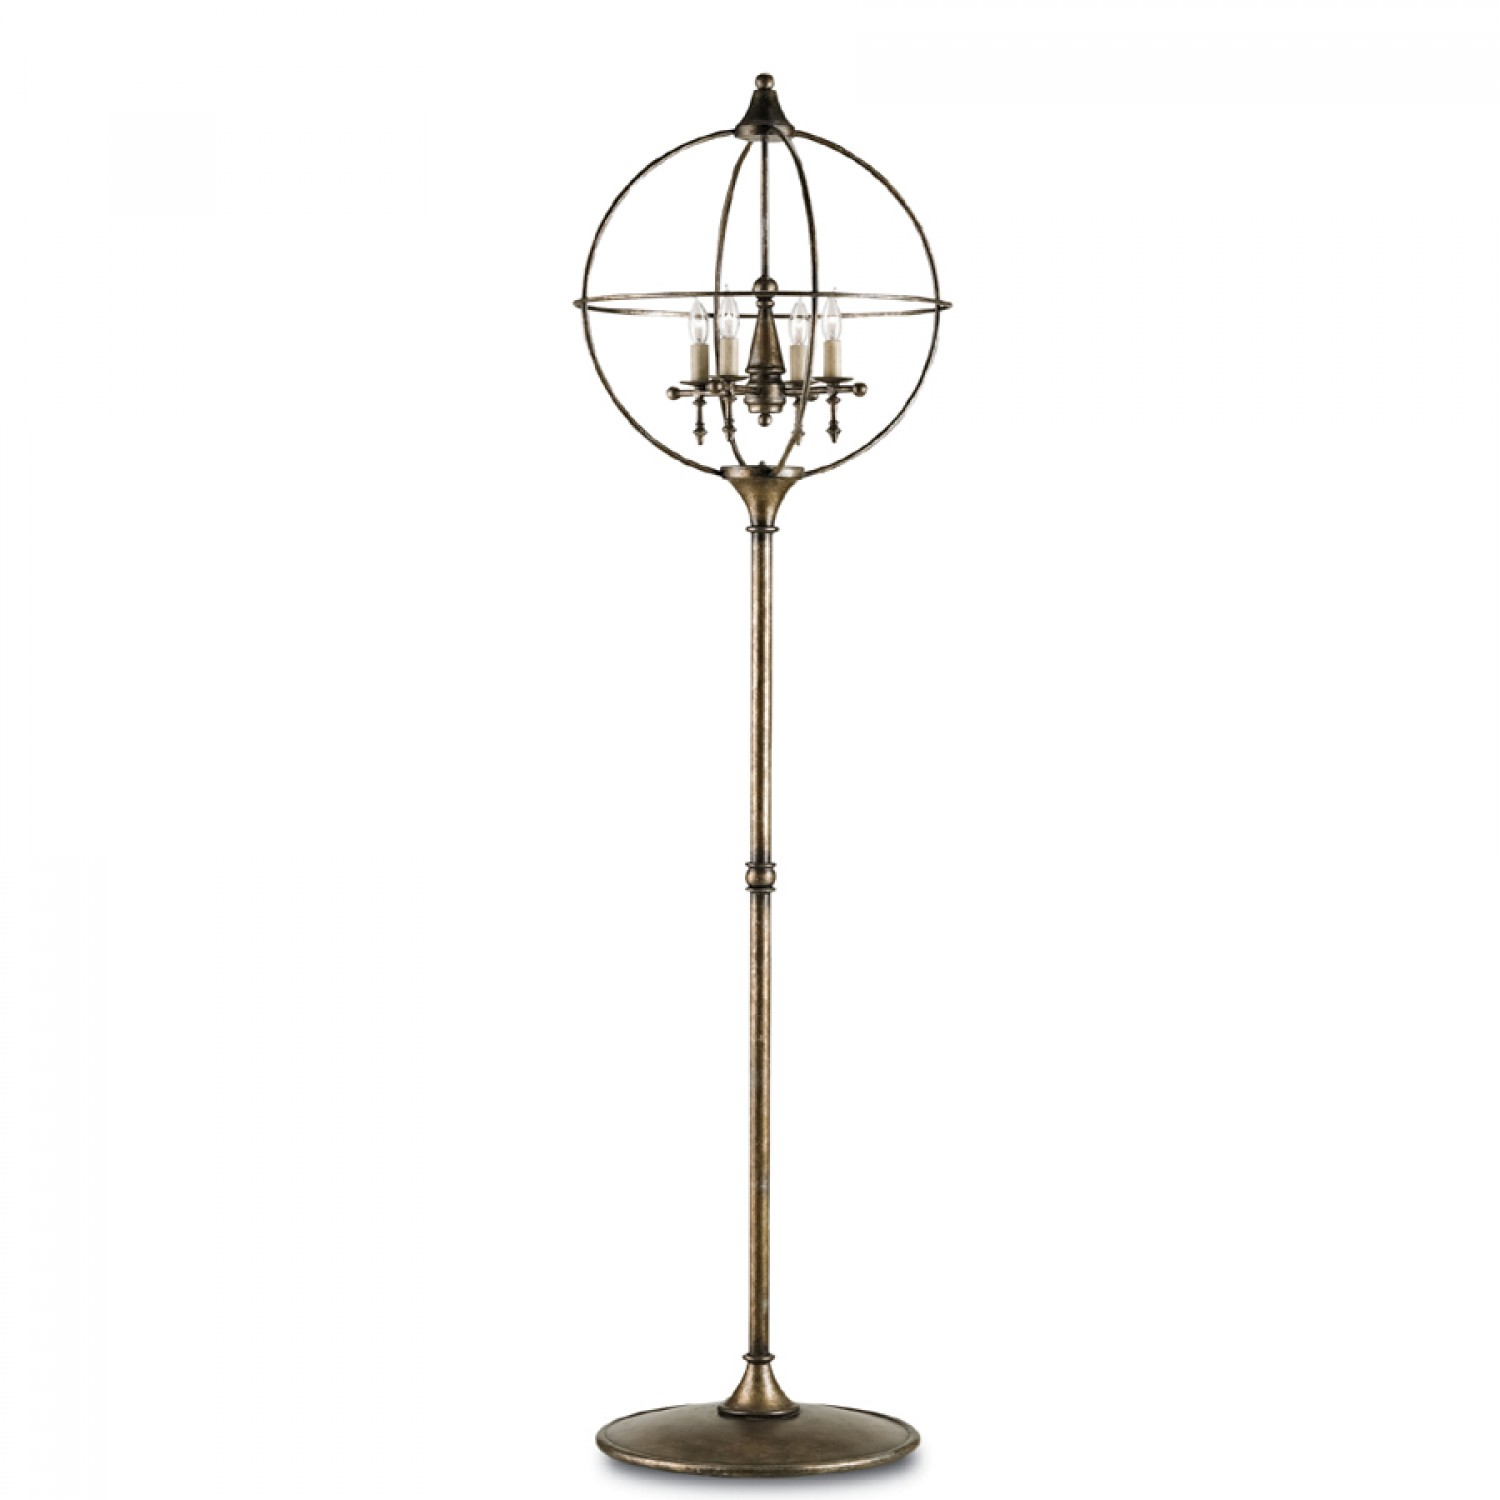 Antique floor lamp with table - 25 Facts About Vintage Floor Lamps You Should To Know